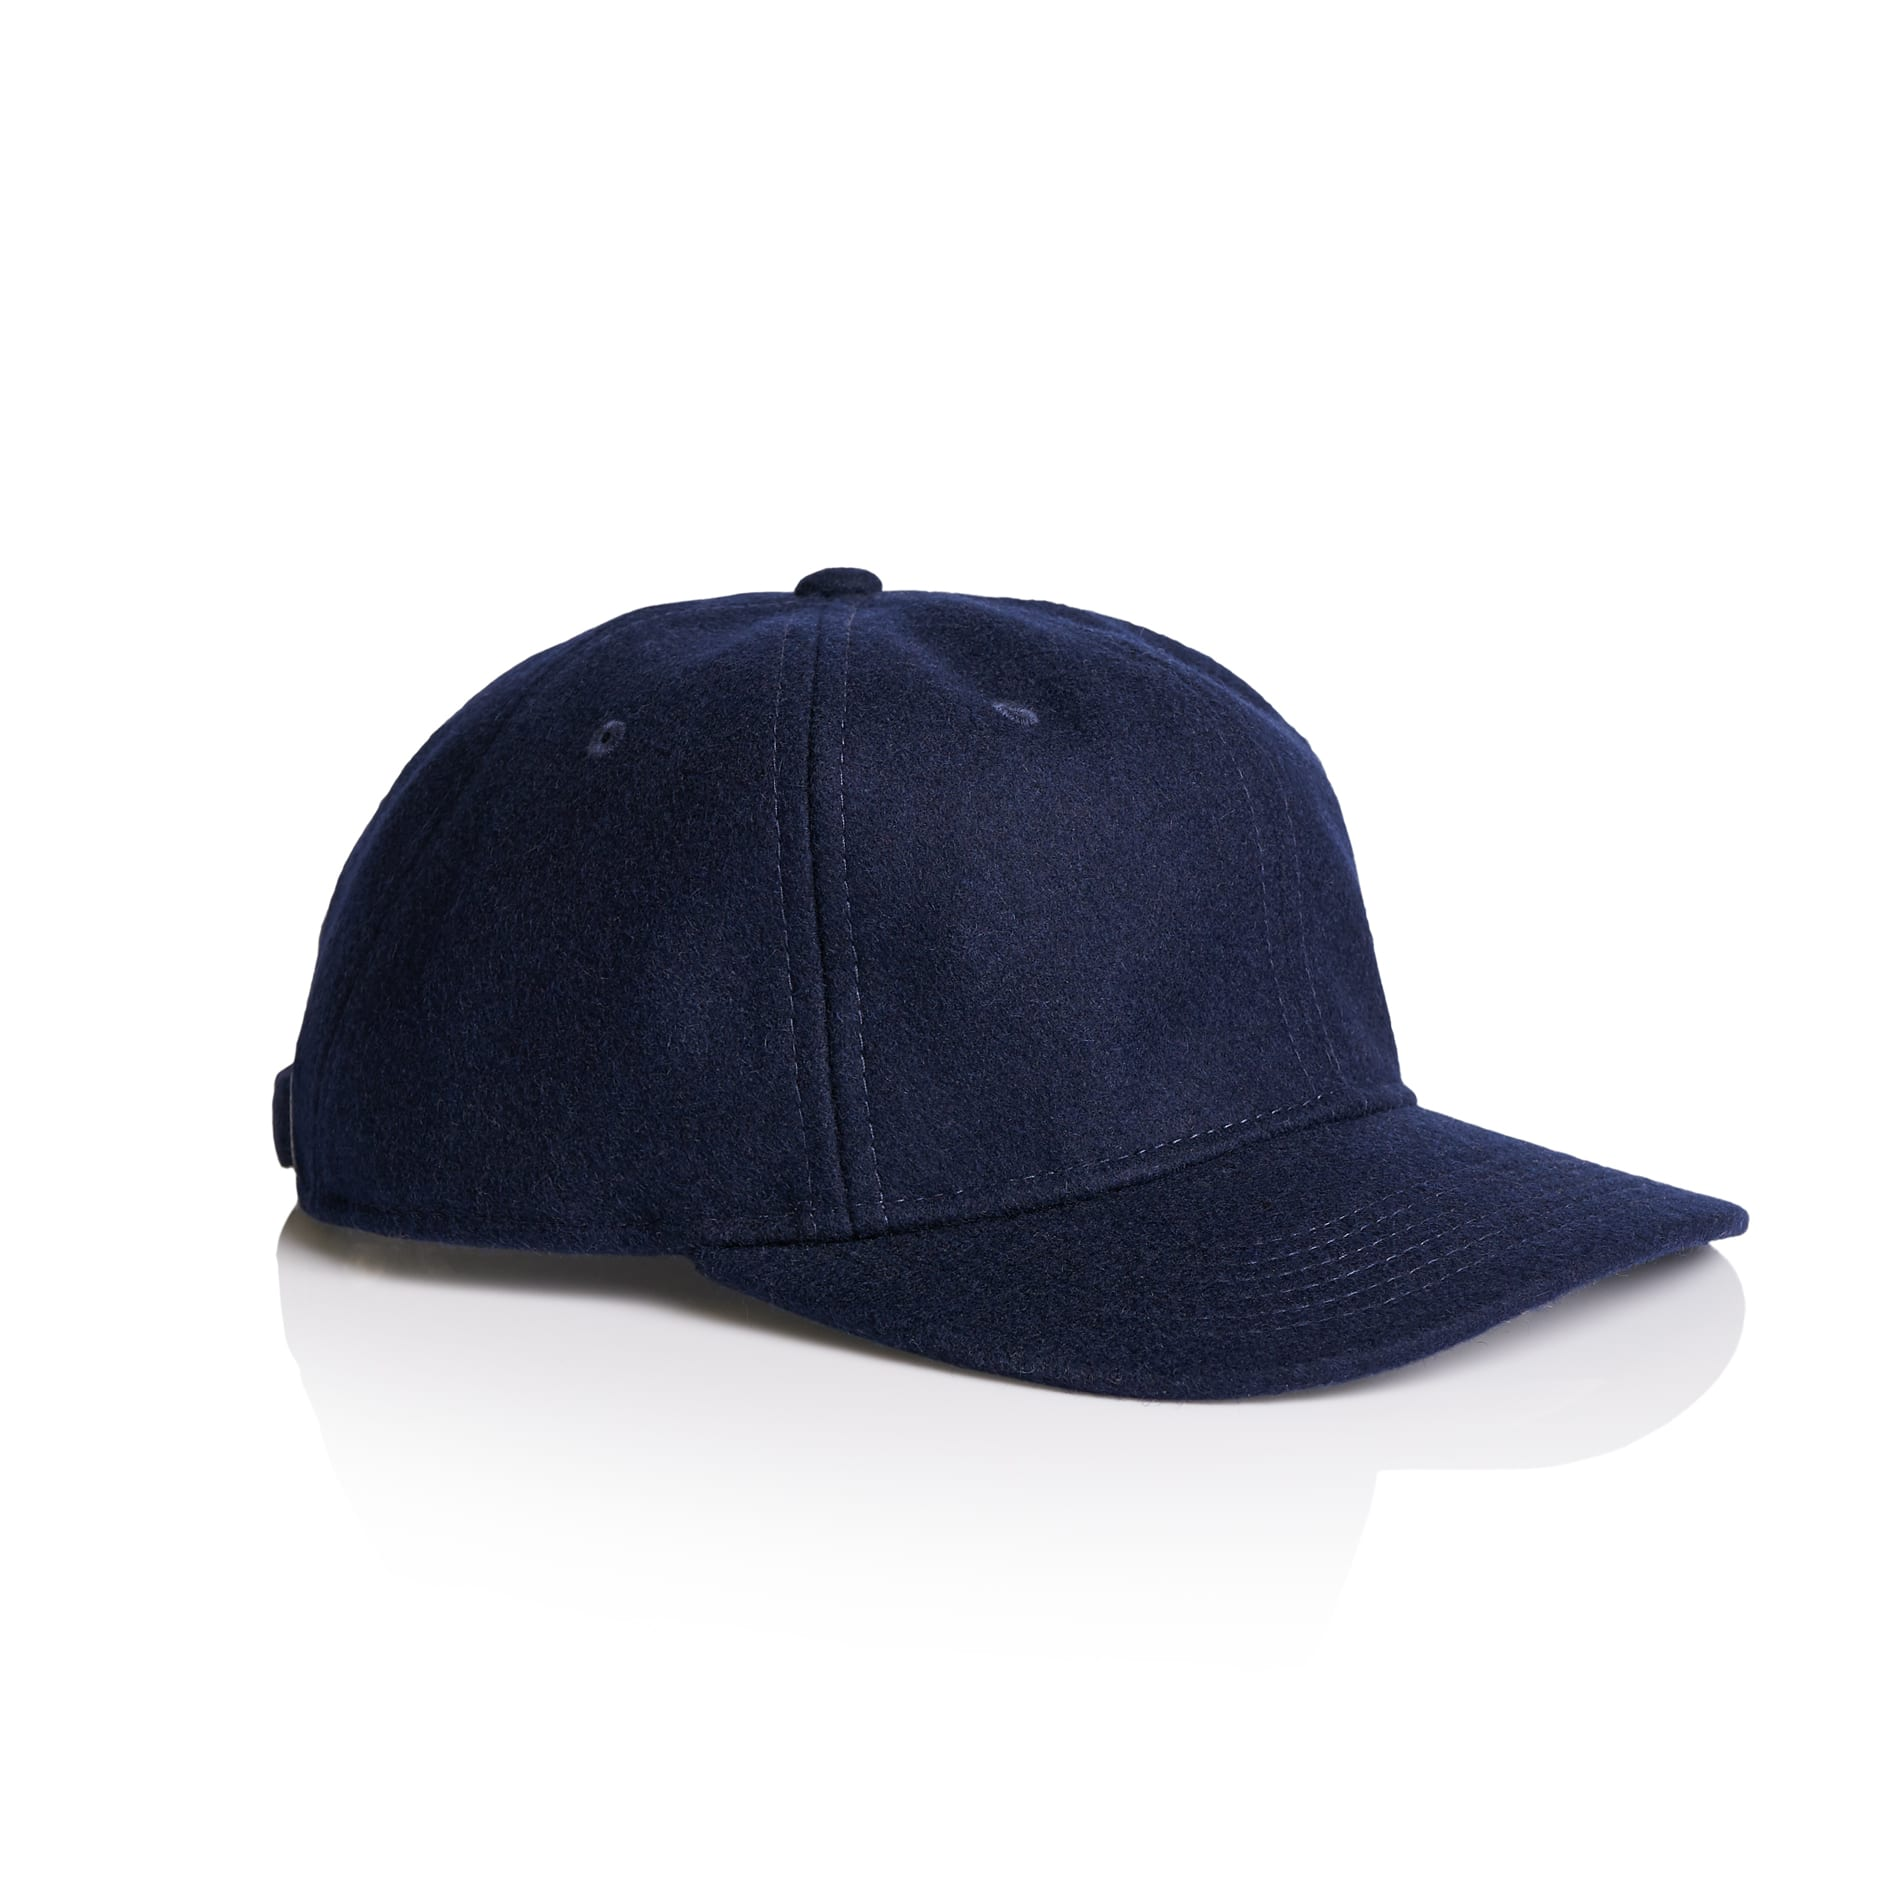 AS 1113 Bates Cap